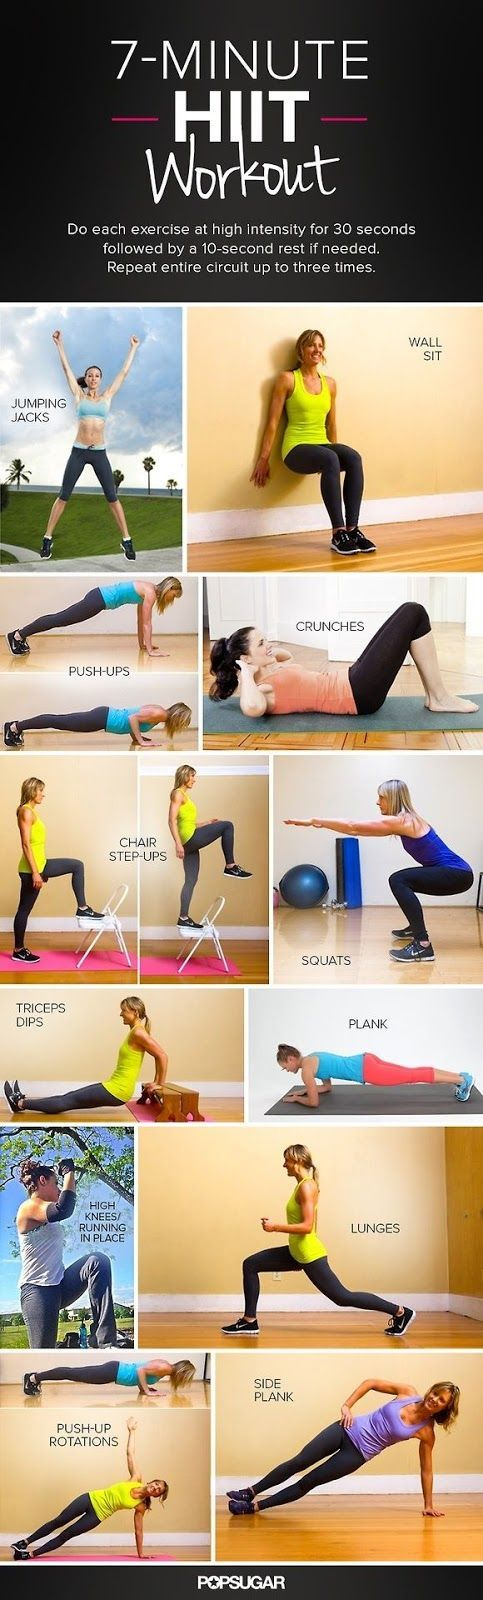 Burn Major Calories With This 7-Minute Hit Workout | Posted by: CustomWeightLossProgram.com